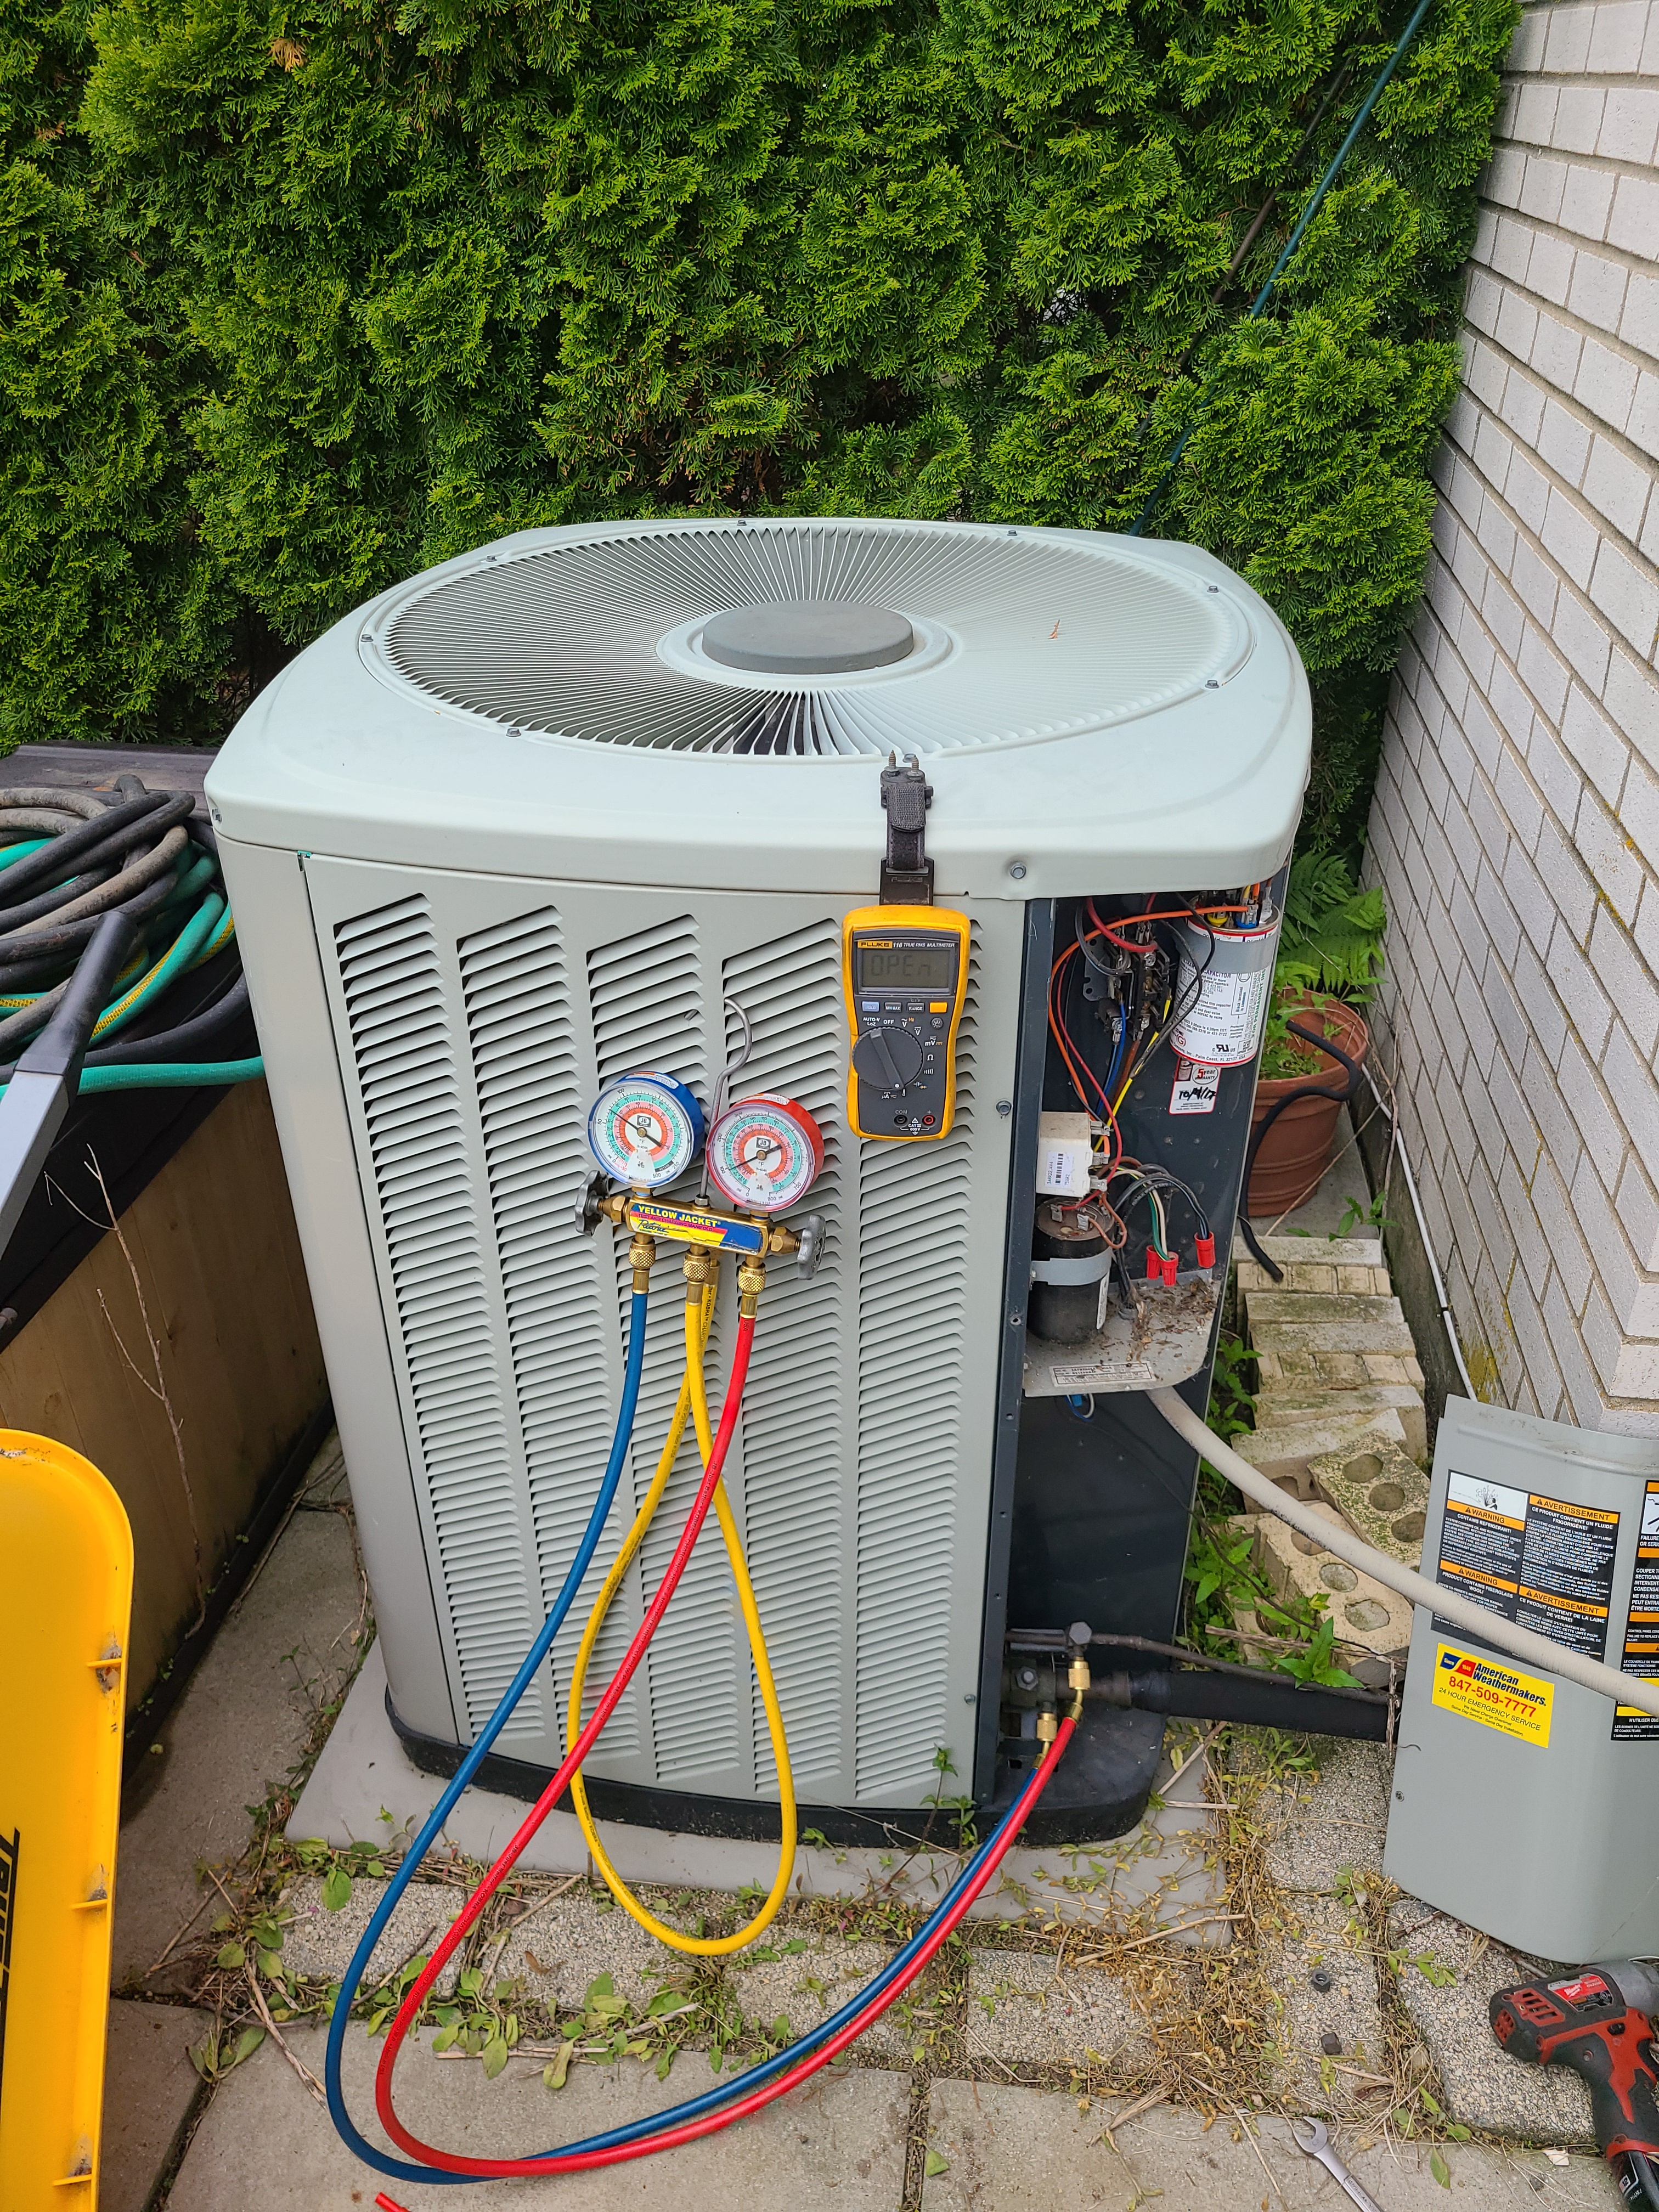 Trane air conditioning system cleaned and checked, ready for spring.